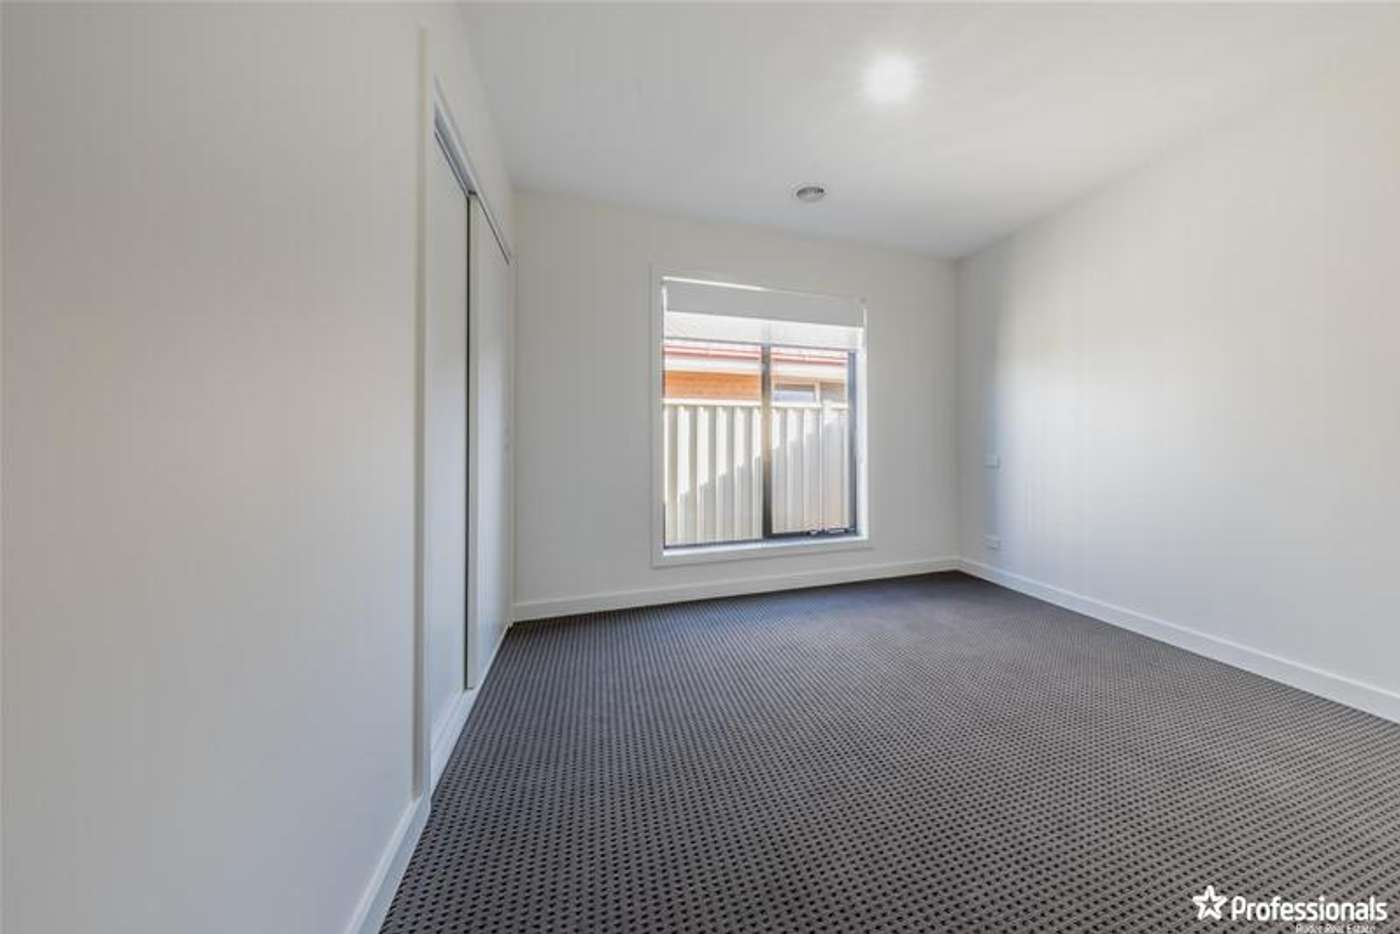 Sixth view of Homely house listing, 14A Cambrian Way, Melton West VIC 3337